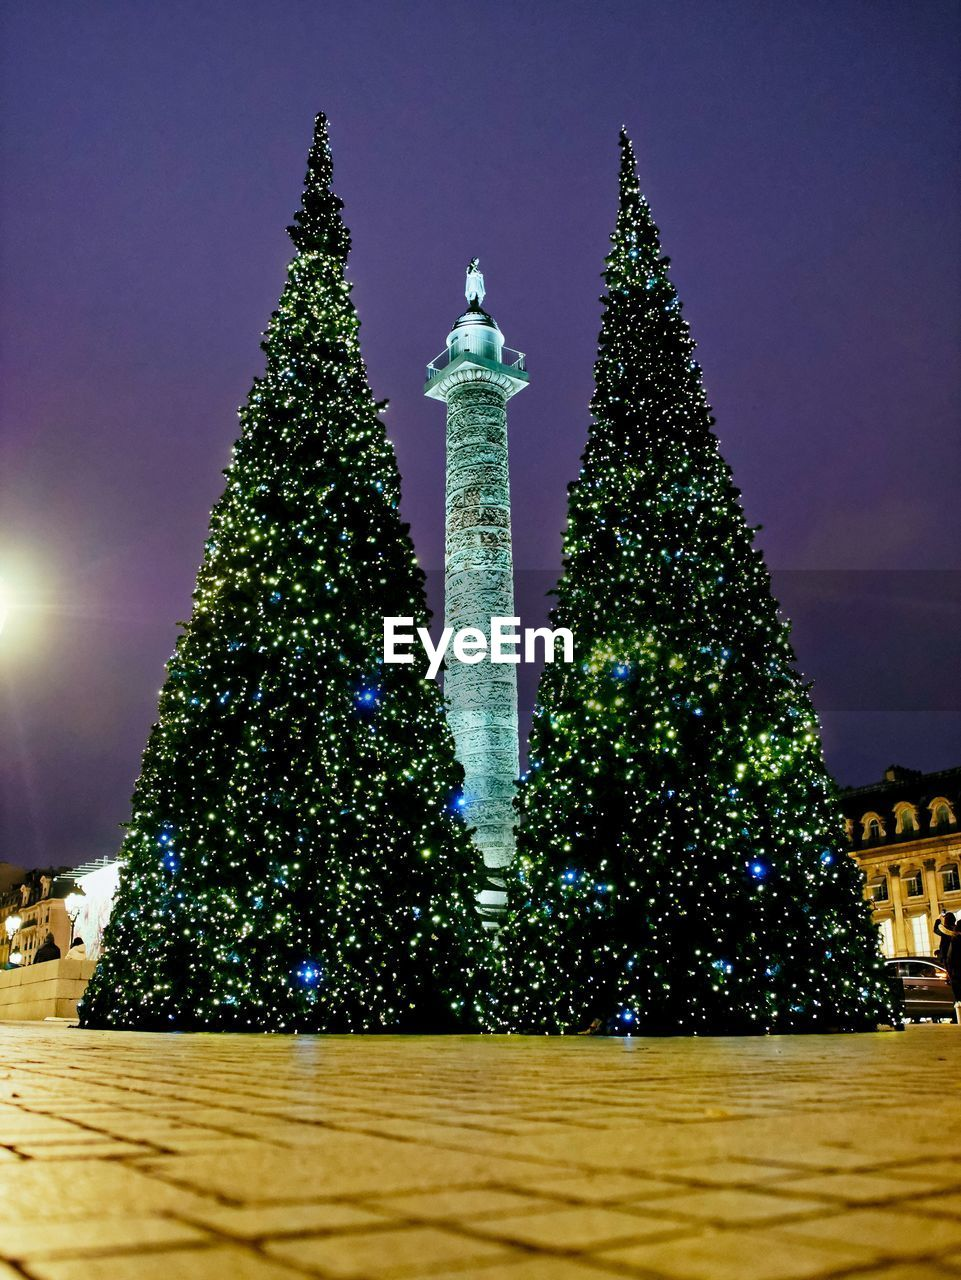 night, architecture, illuminated, low angle view, built structure, christmas tree, building exterior, tree, no people, outdoors, travel destinations, sky, nature